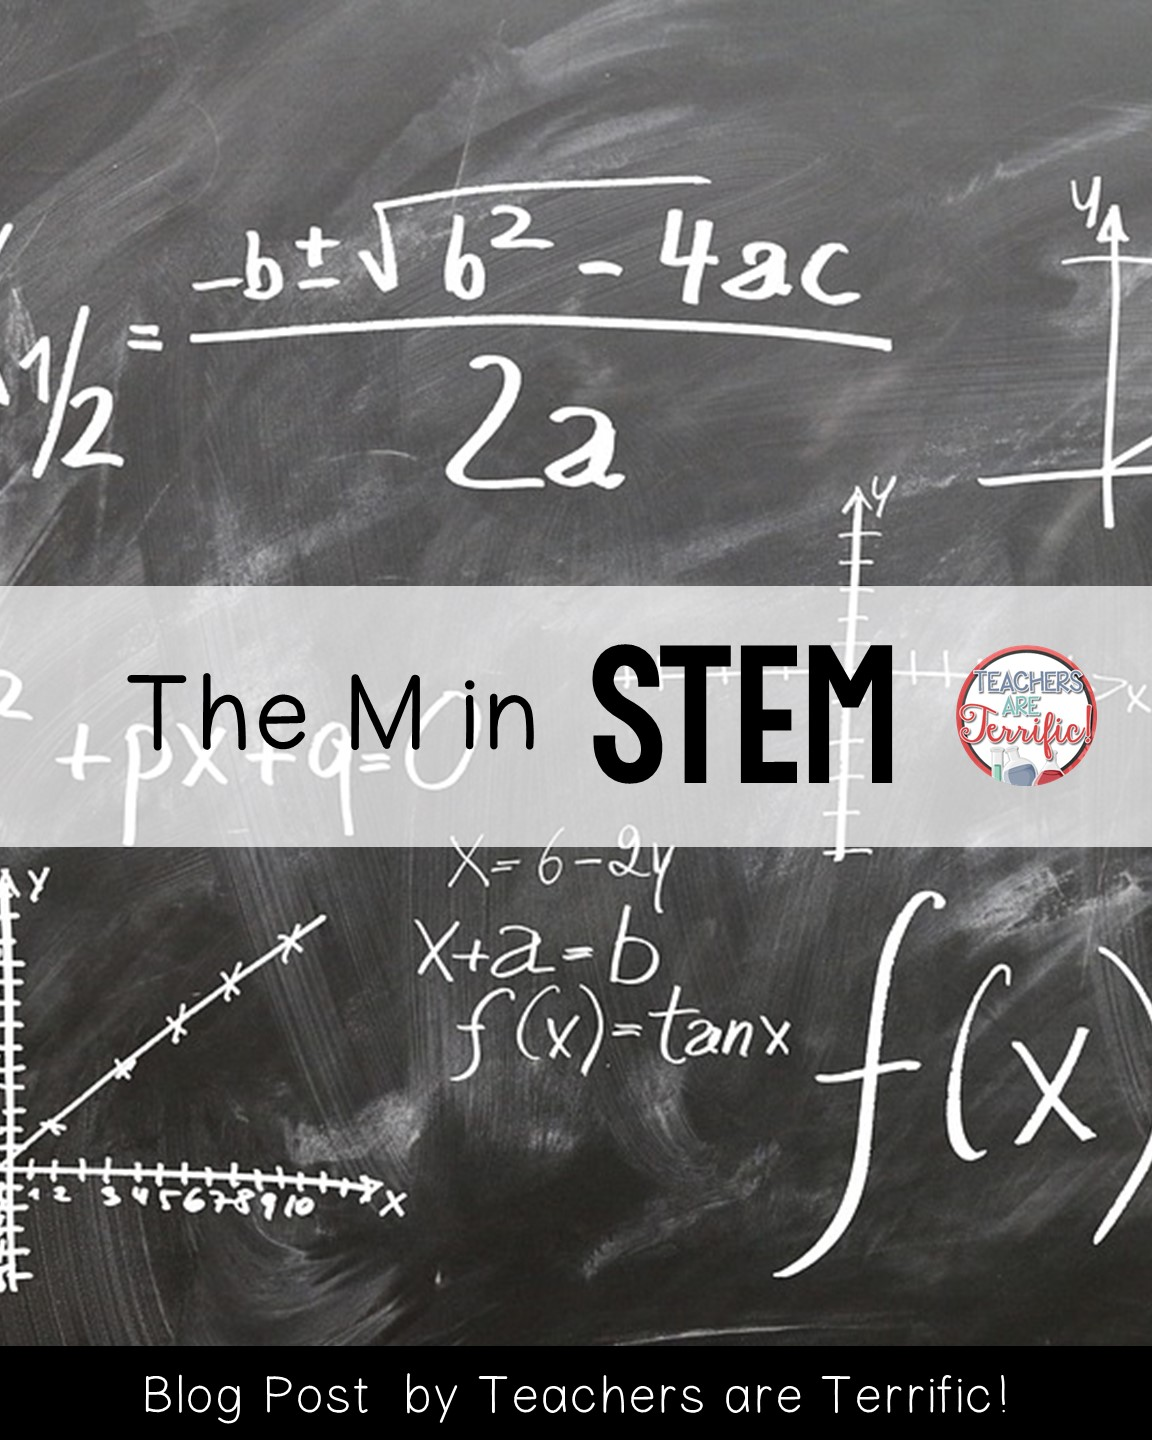 Time for the M in STEM!